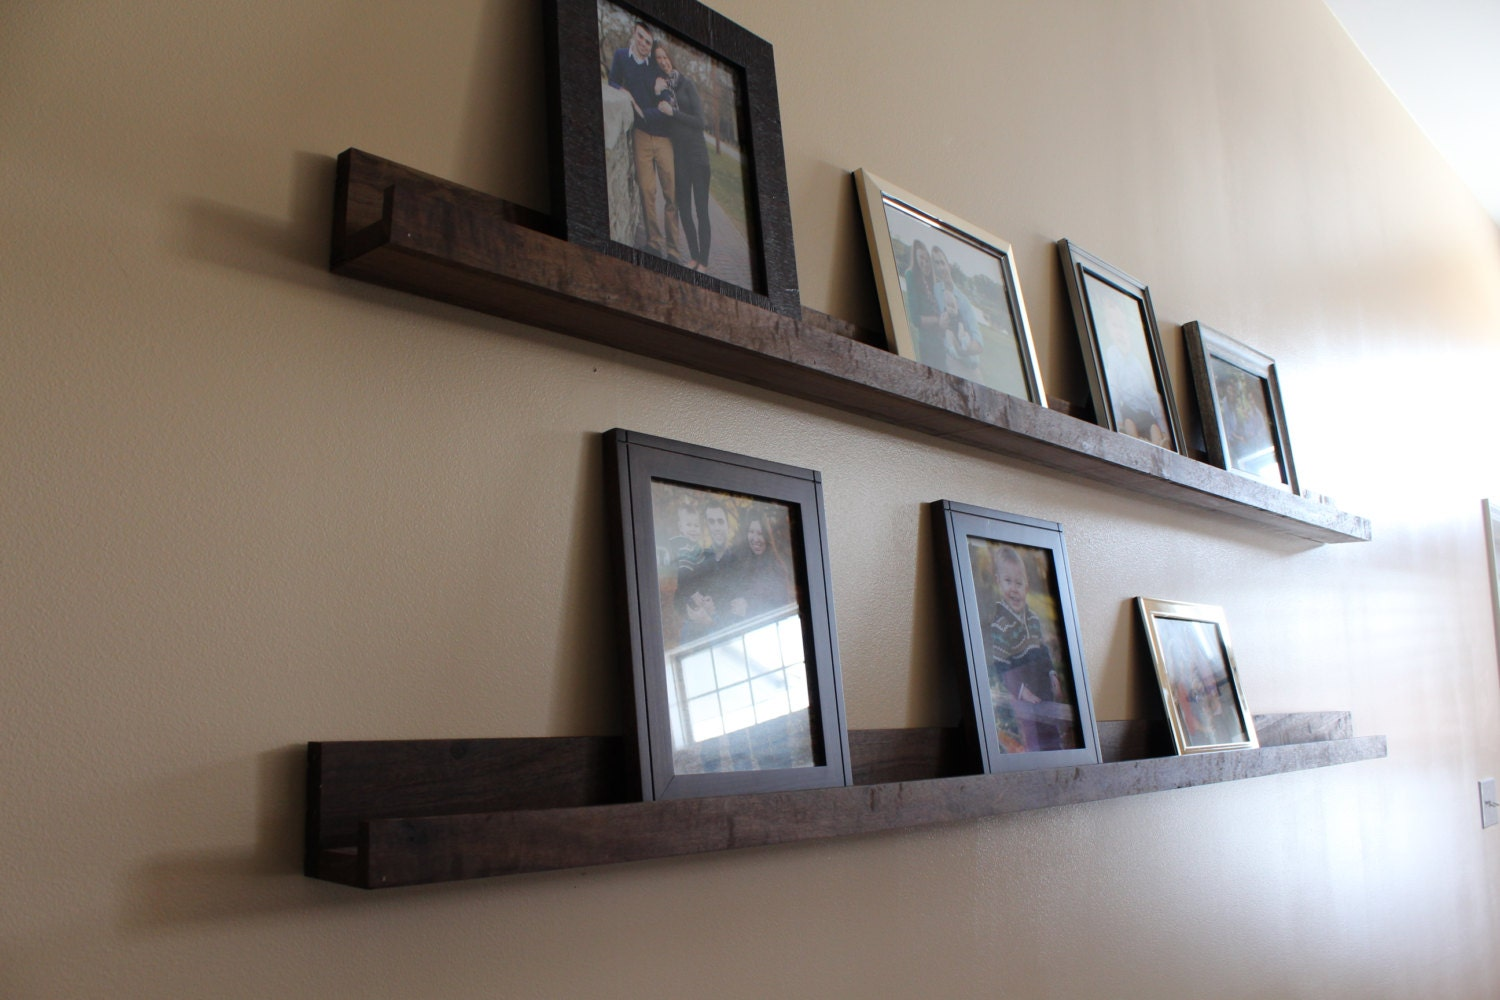 Wall Hanging Picture Shelf Or Book Shelf Ledger Wall